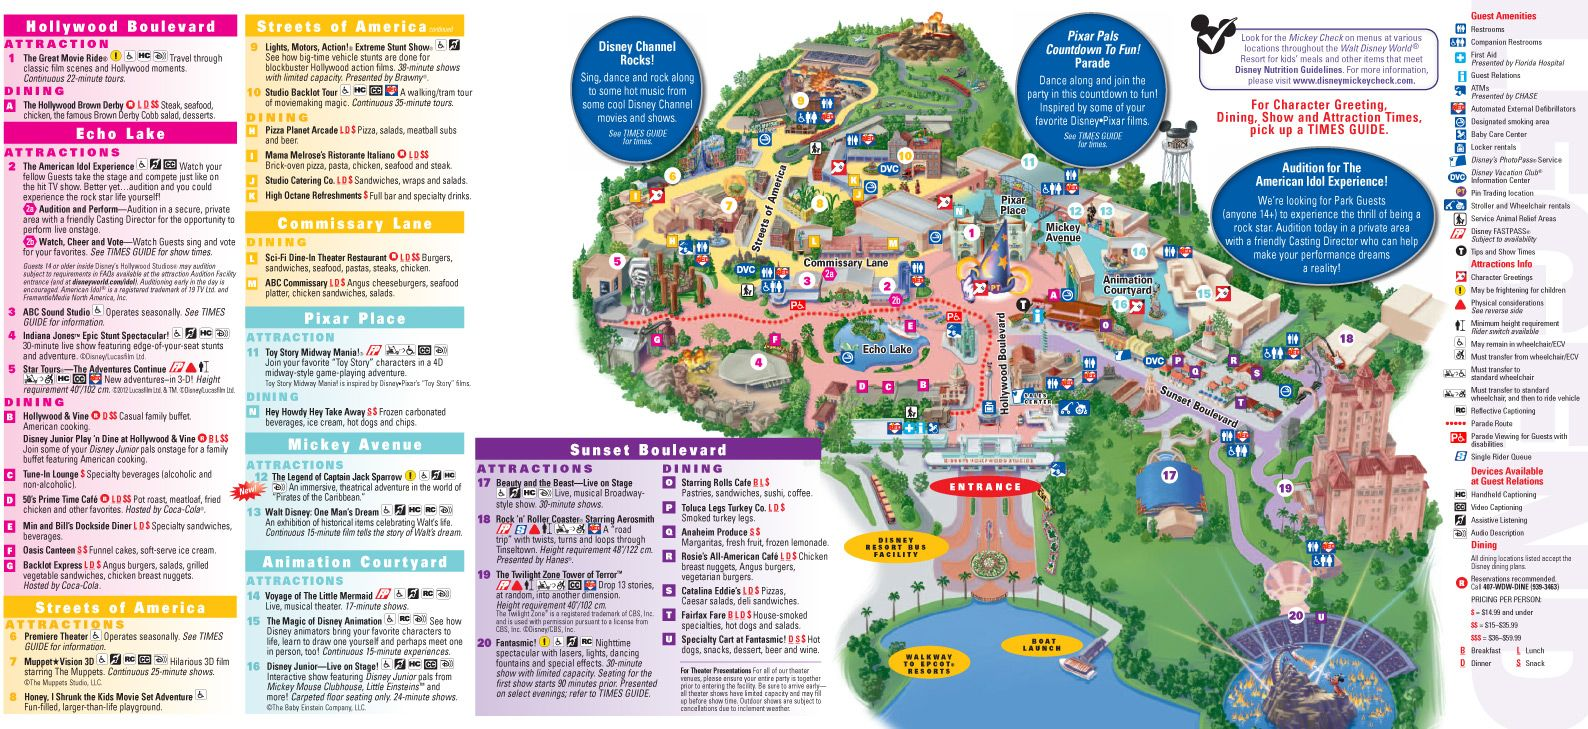 image relating to Printable Disney Maps identified as 2013 Hollywood Studios Map Vacation towards Disney inside of 2019 Disney